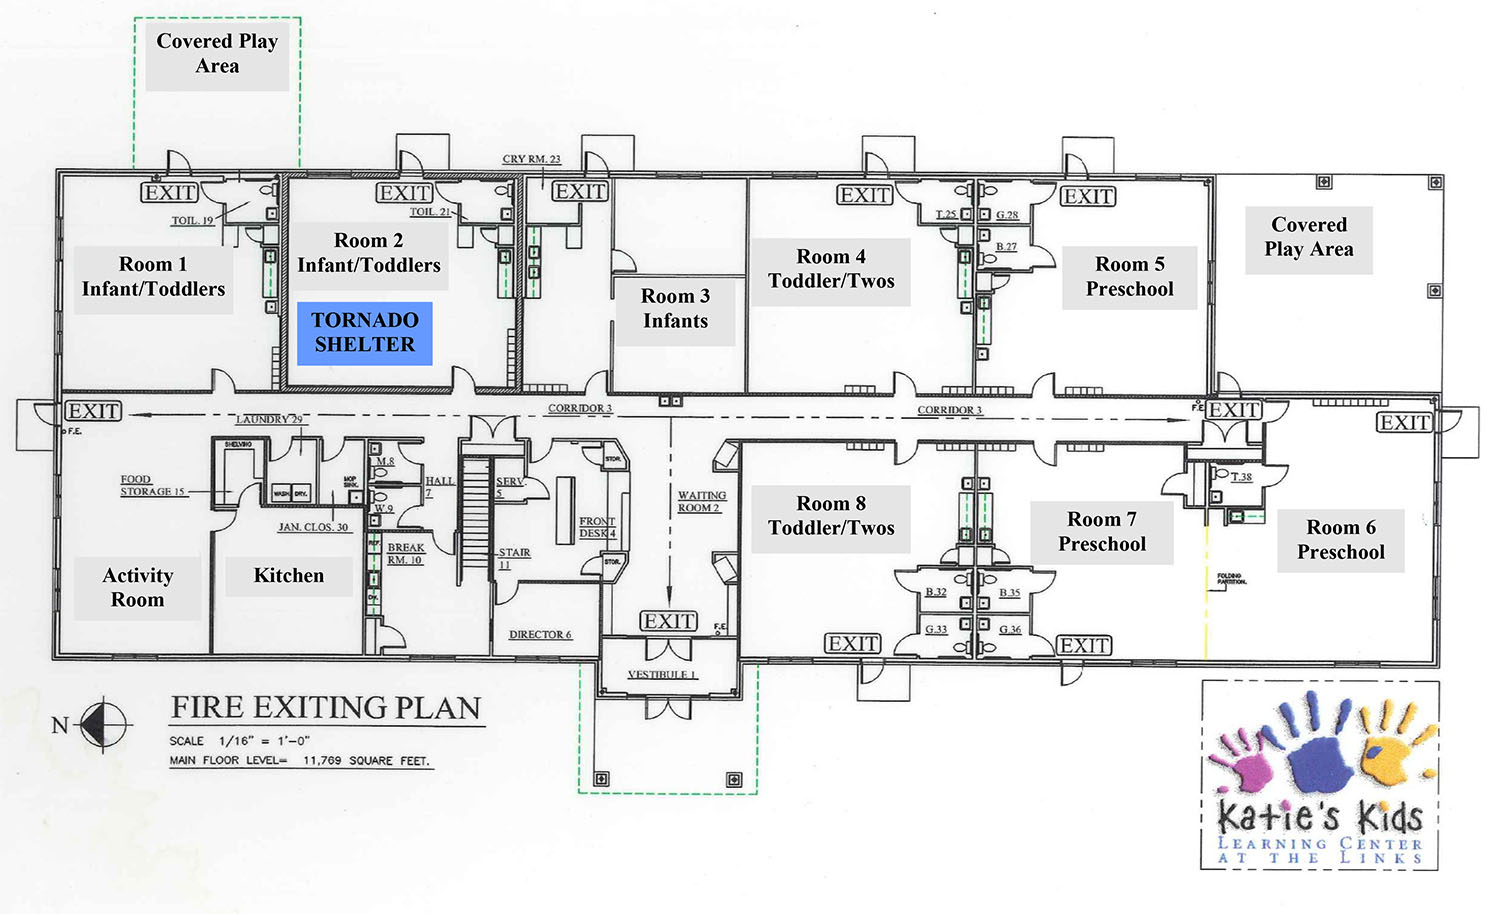 Facility Construction Floorplans At Katie S Kids Learning Center Developing Relationships The Heart Of Quality Childcare